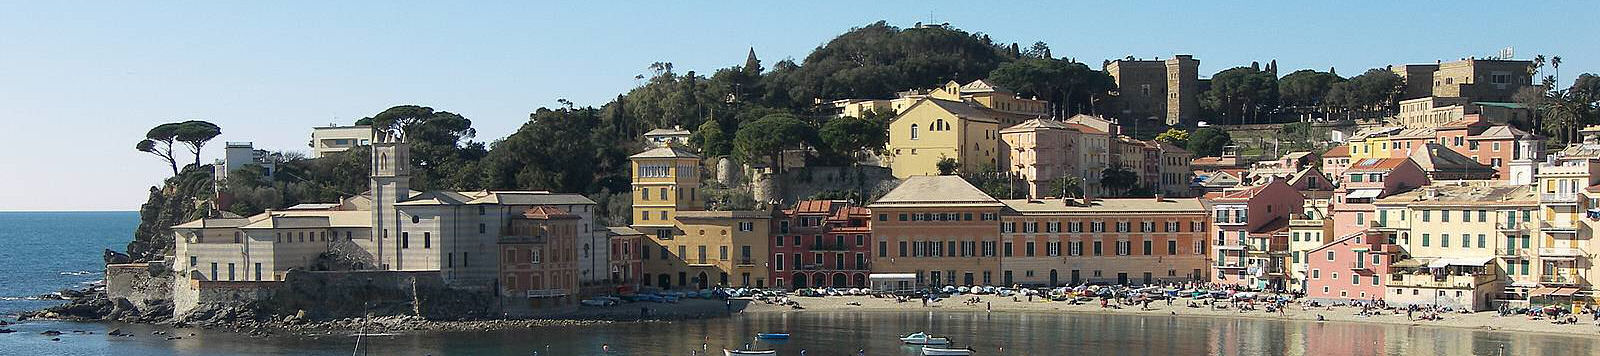 Sestri-Levante-bay-of-silence-inlet1